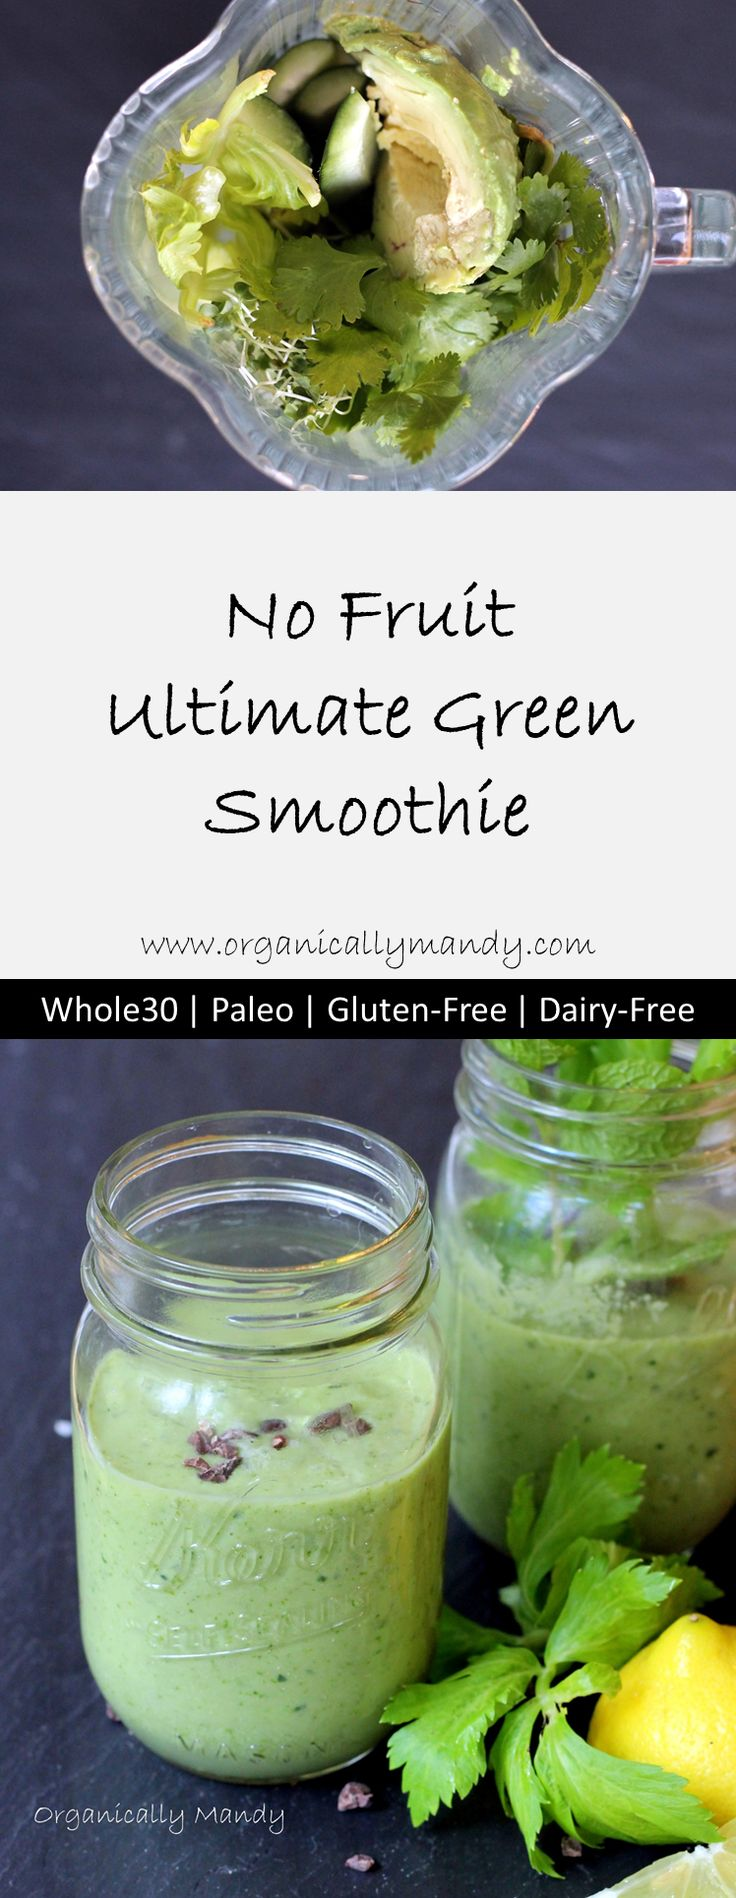 Whole30 Green Smoothie | Paleo Green Smoothie | No Fruit Green Smoothie Free of sugar and fruit, this smoothie gets its flavor from cucumbers, herbs, and lemon.